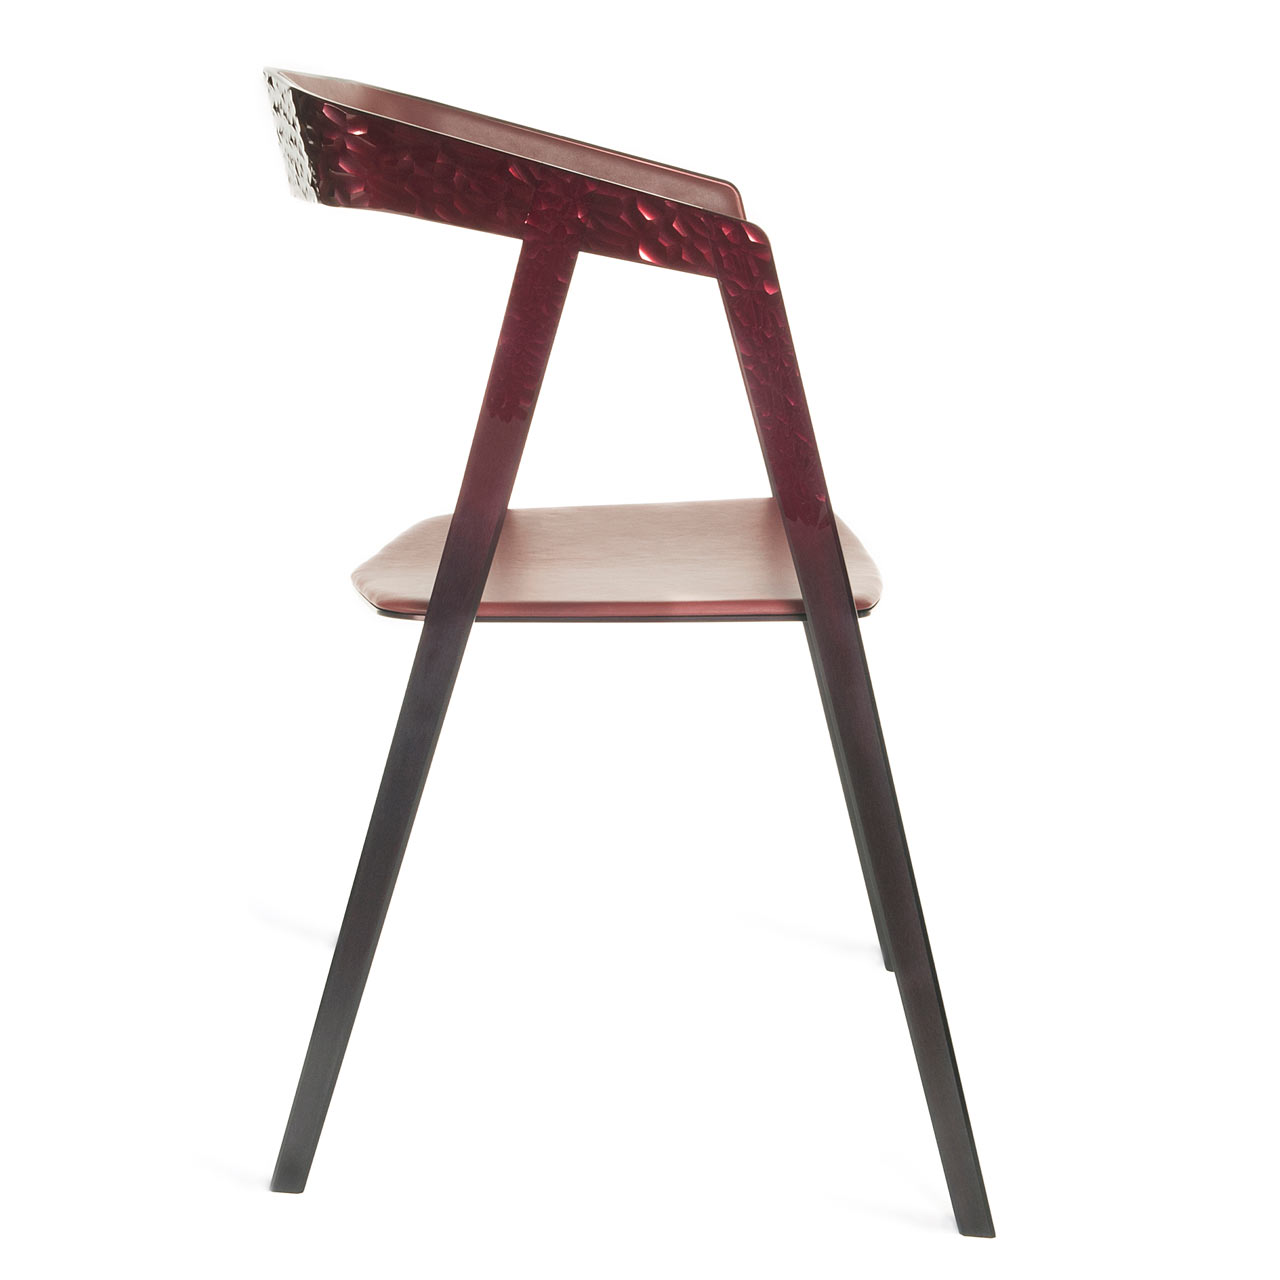 alexander-purcell-rodrigues-red-chair-1